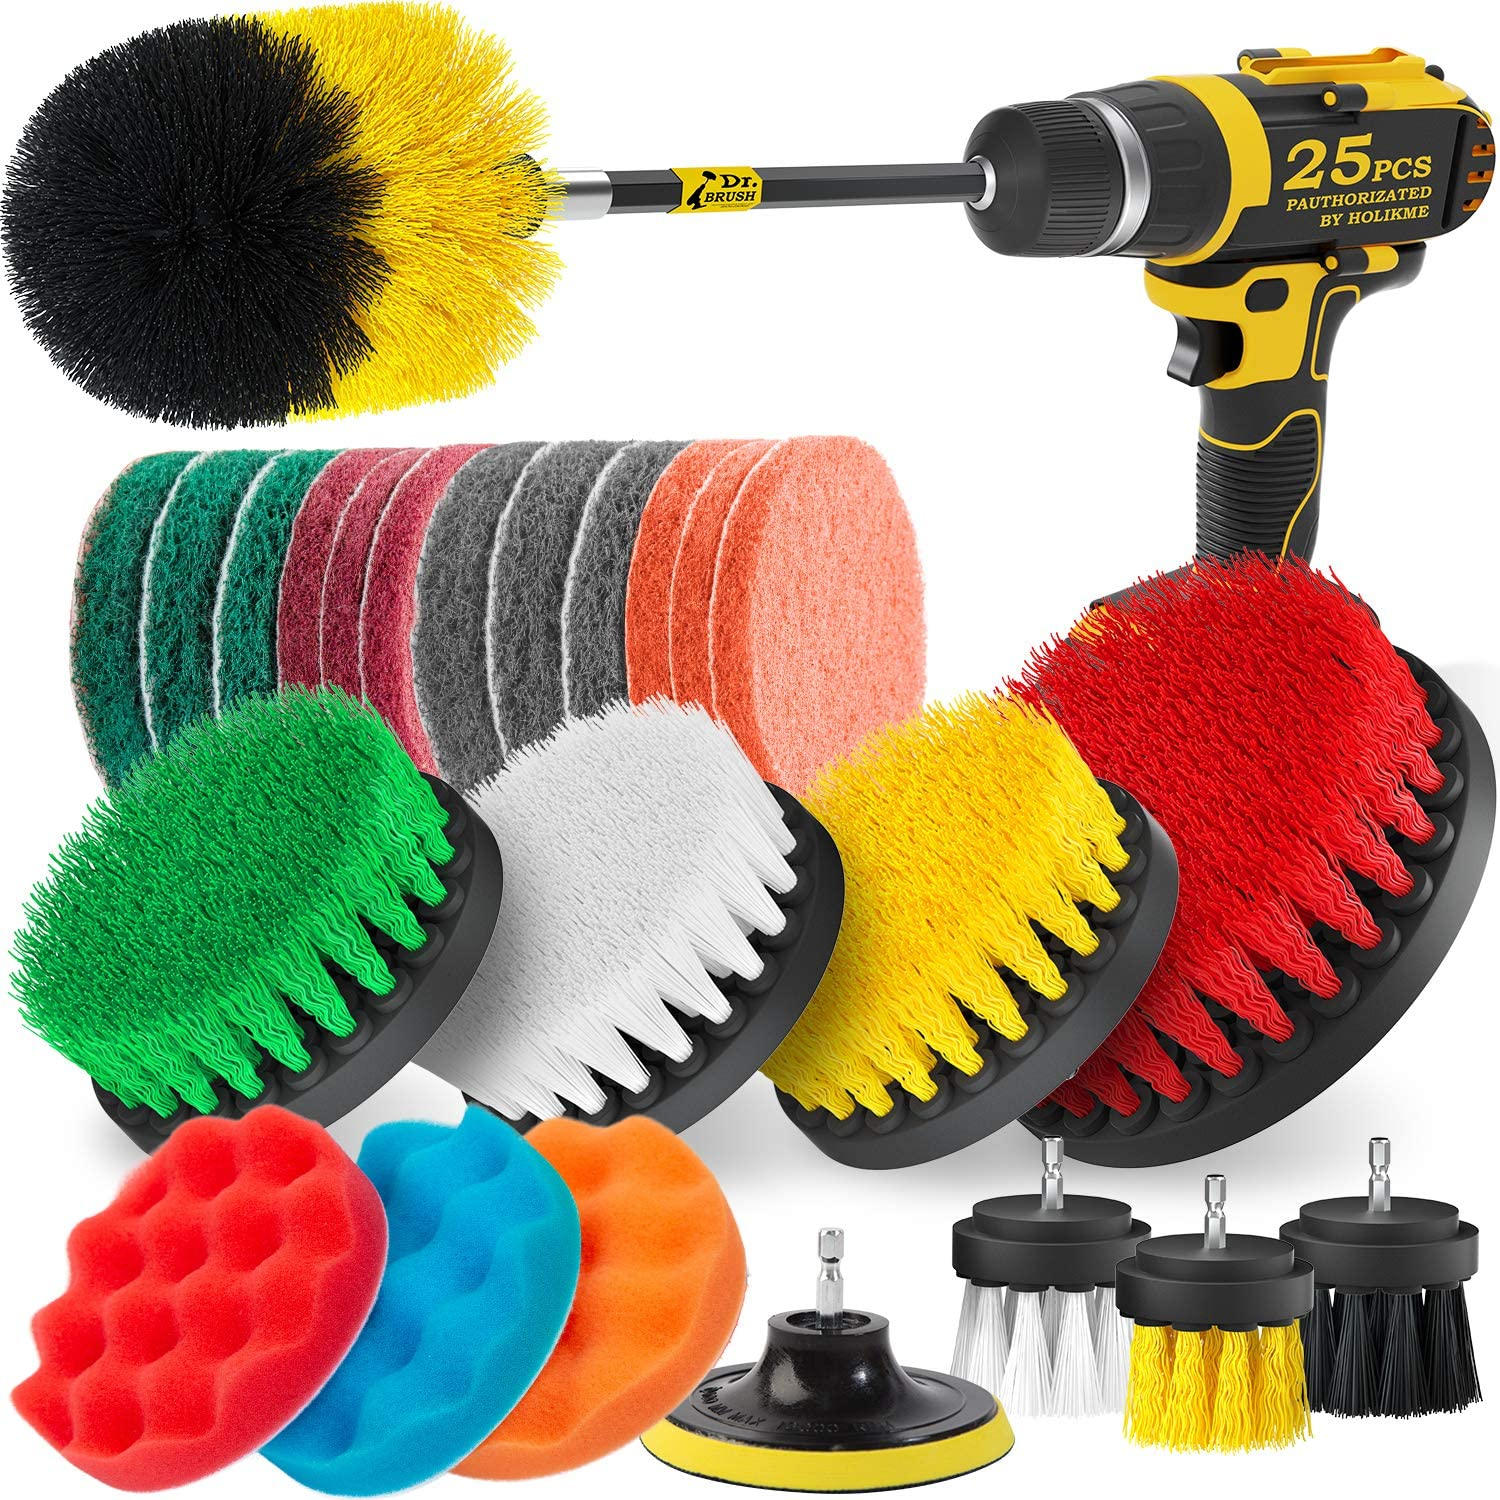 6 Pcs//Set Tile Grout Power Scrubber Cleaning Drill Brush Scrub Tub Cleaner Combo